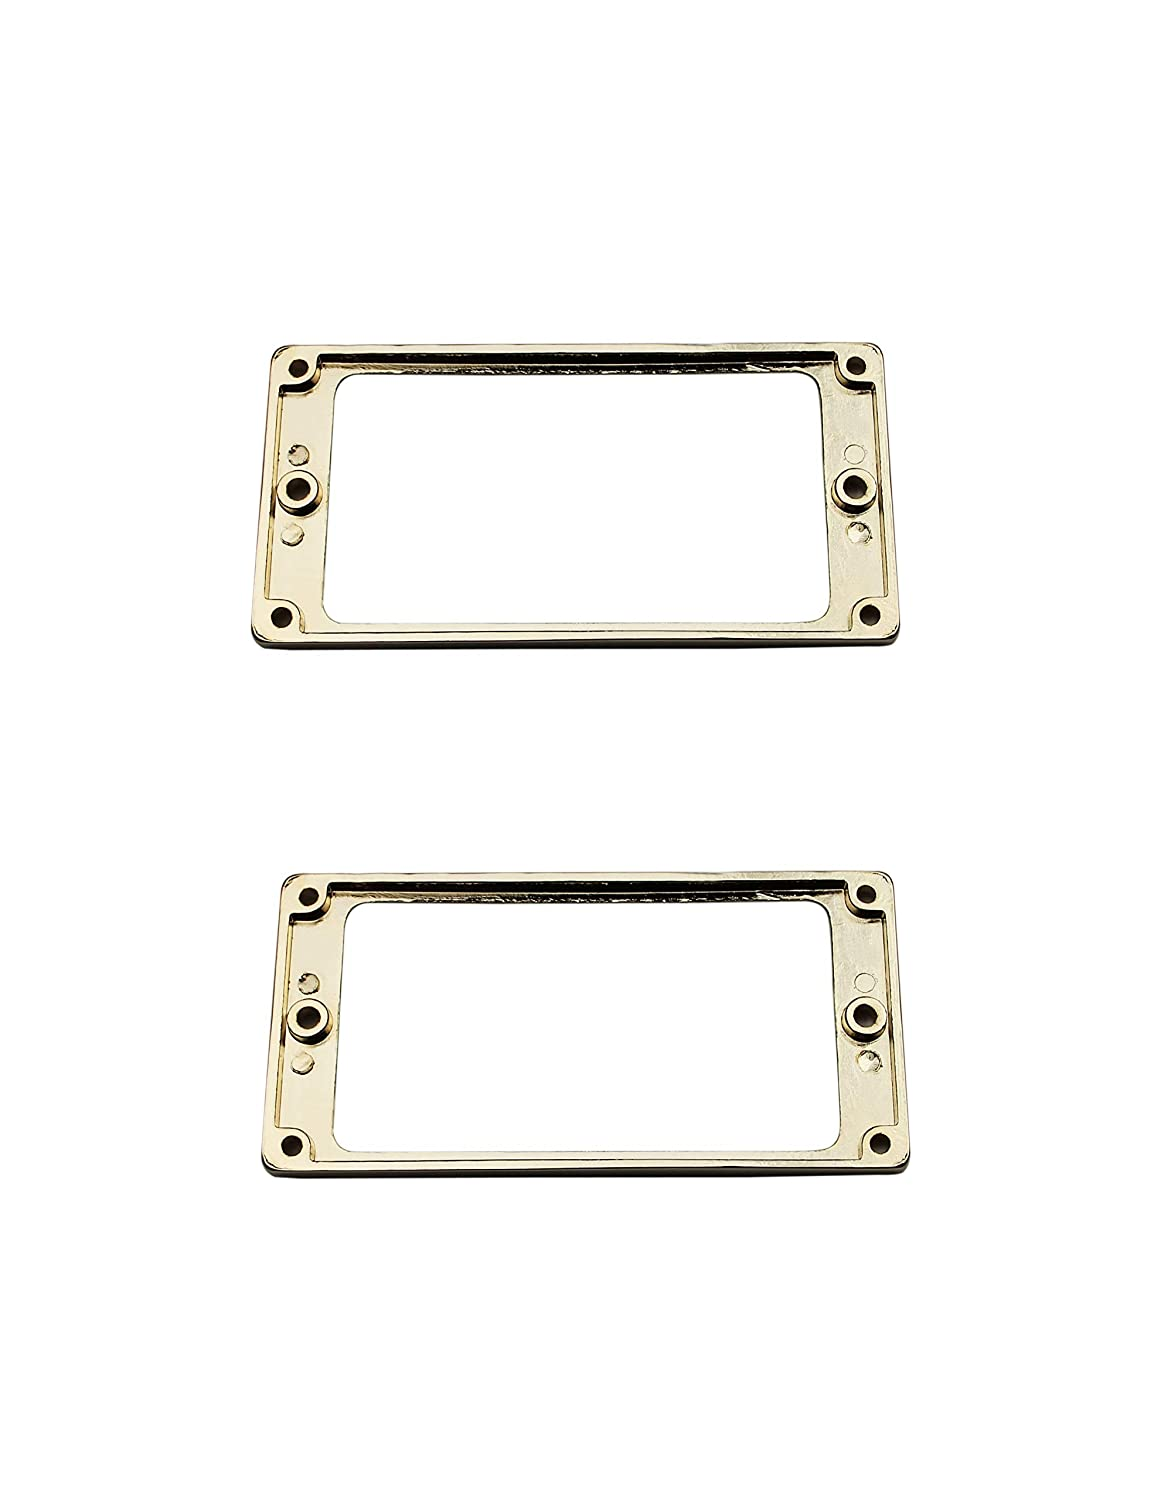 Metal Pickups Cover Frame Flat-Top Set Replacement Electric Guitar or Bass Guyker 2Pcs Pickup Mounting Rings for Humbucker Golden